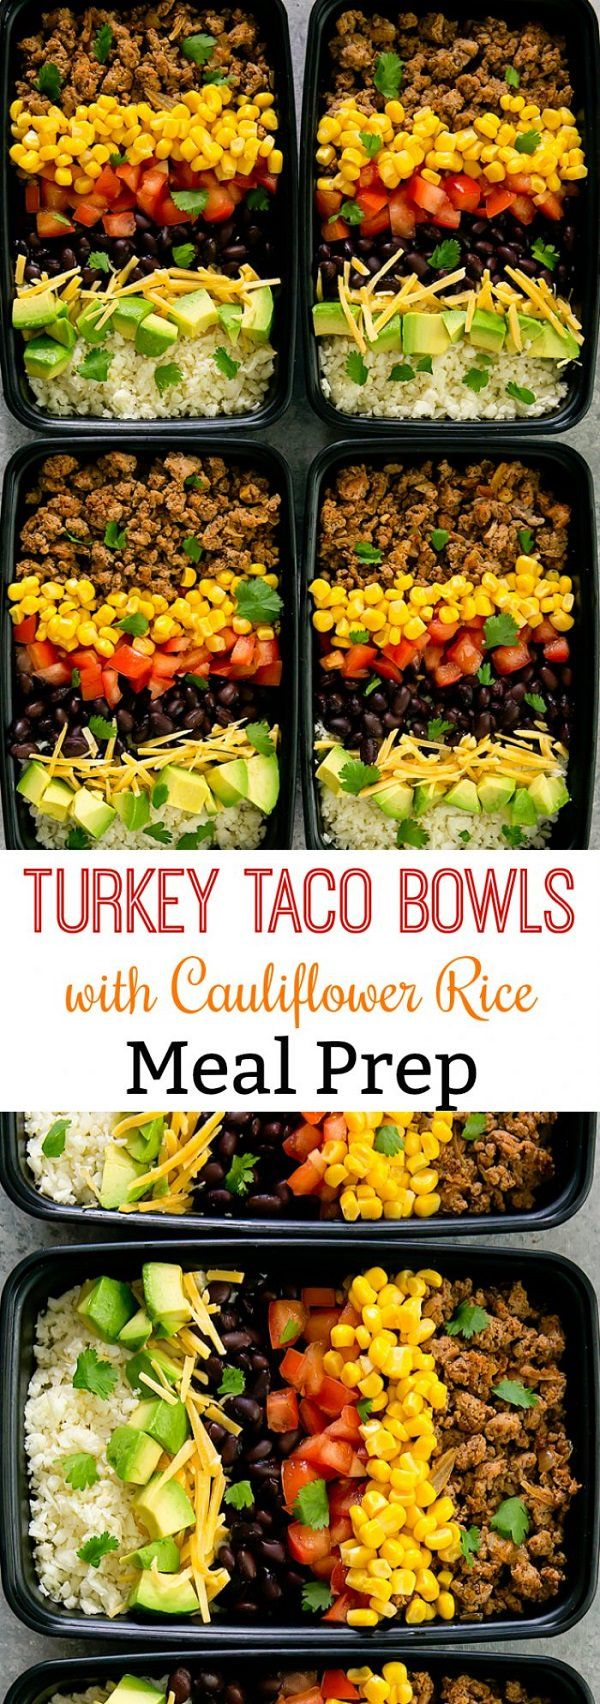 Skinny turkey taco bowls are served with cauliflower rice for a healthy, low carb and flavorful meal that can be prepped ahead of time for your weekly meal prep. Each container is filled with lean ground turkey cooked in taco seasoning, black beans, corn, tomatoes, avocado, shredded cheese, cilantro, and cauliflower rice. You can also …